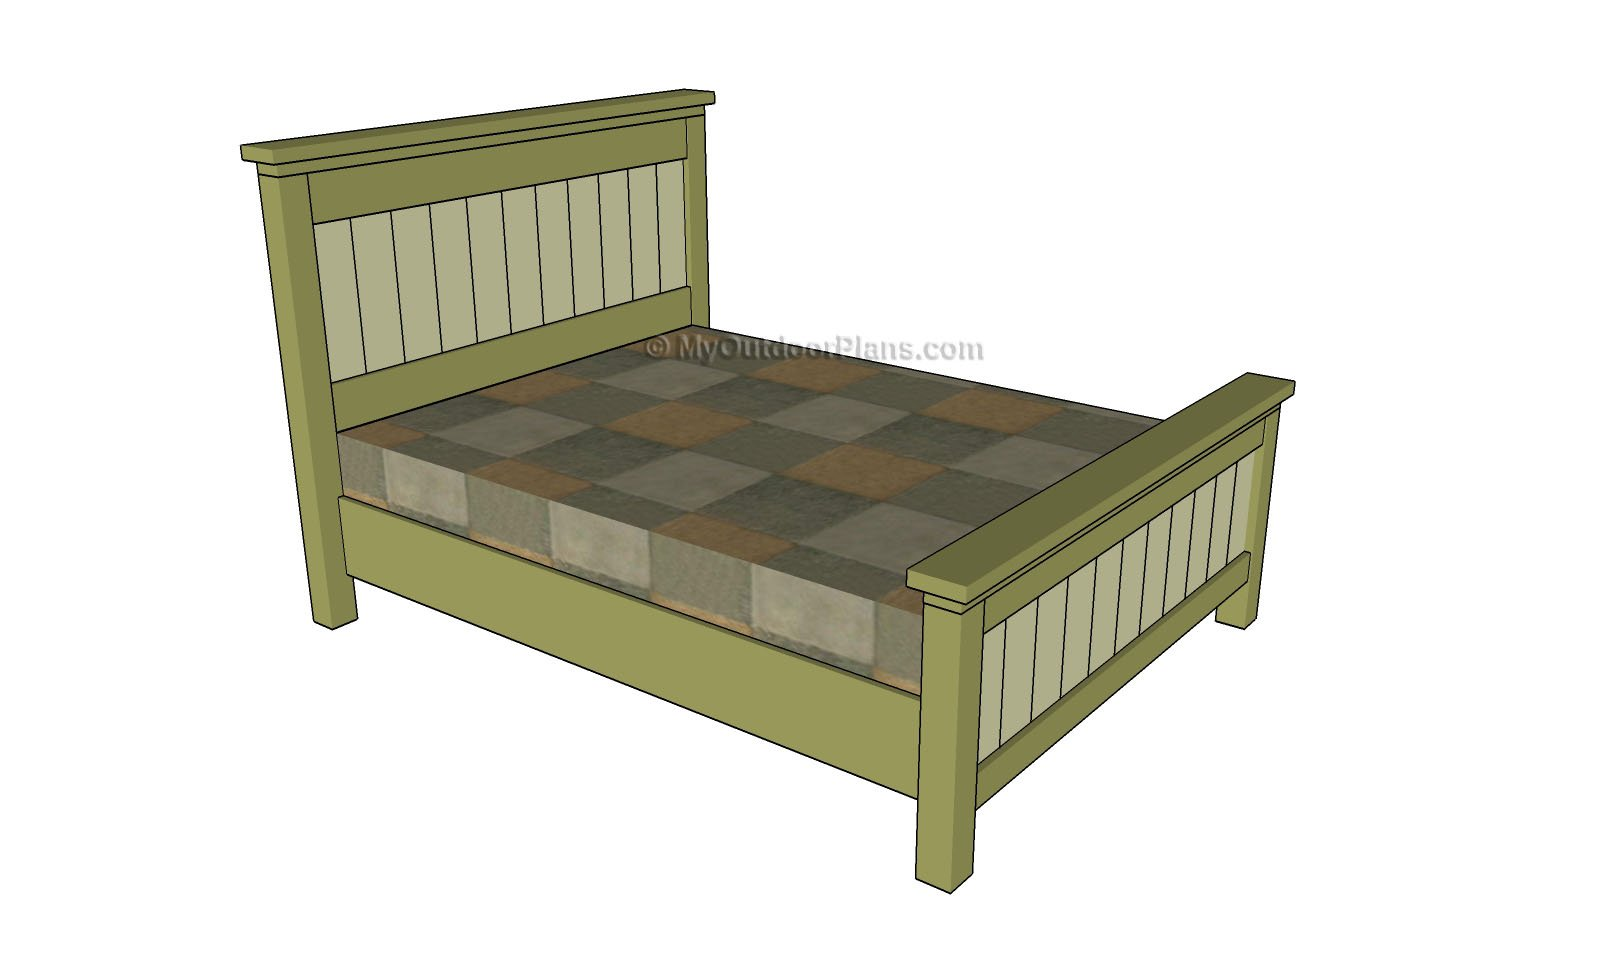 Queen size bed plans free outdoor plans diy shed for Frame plan